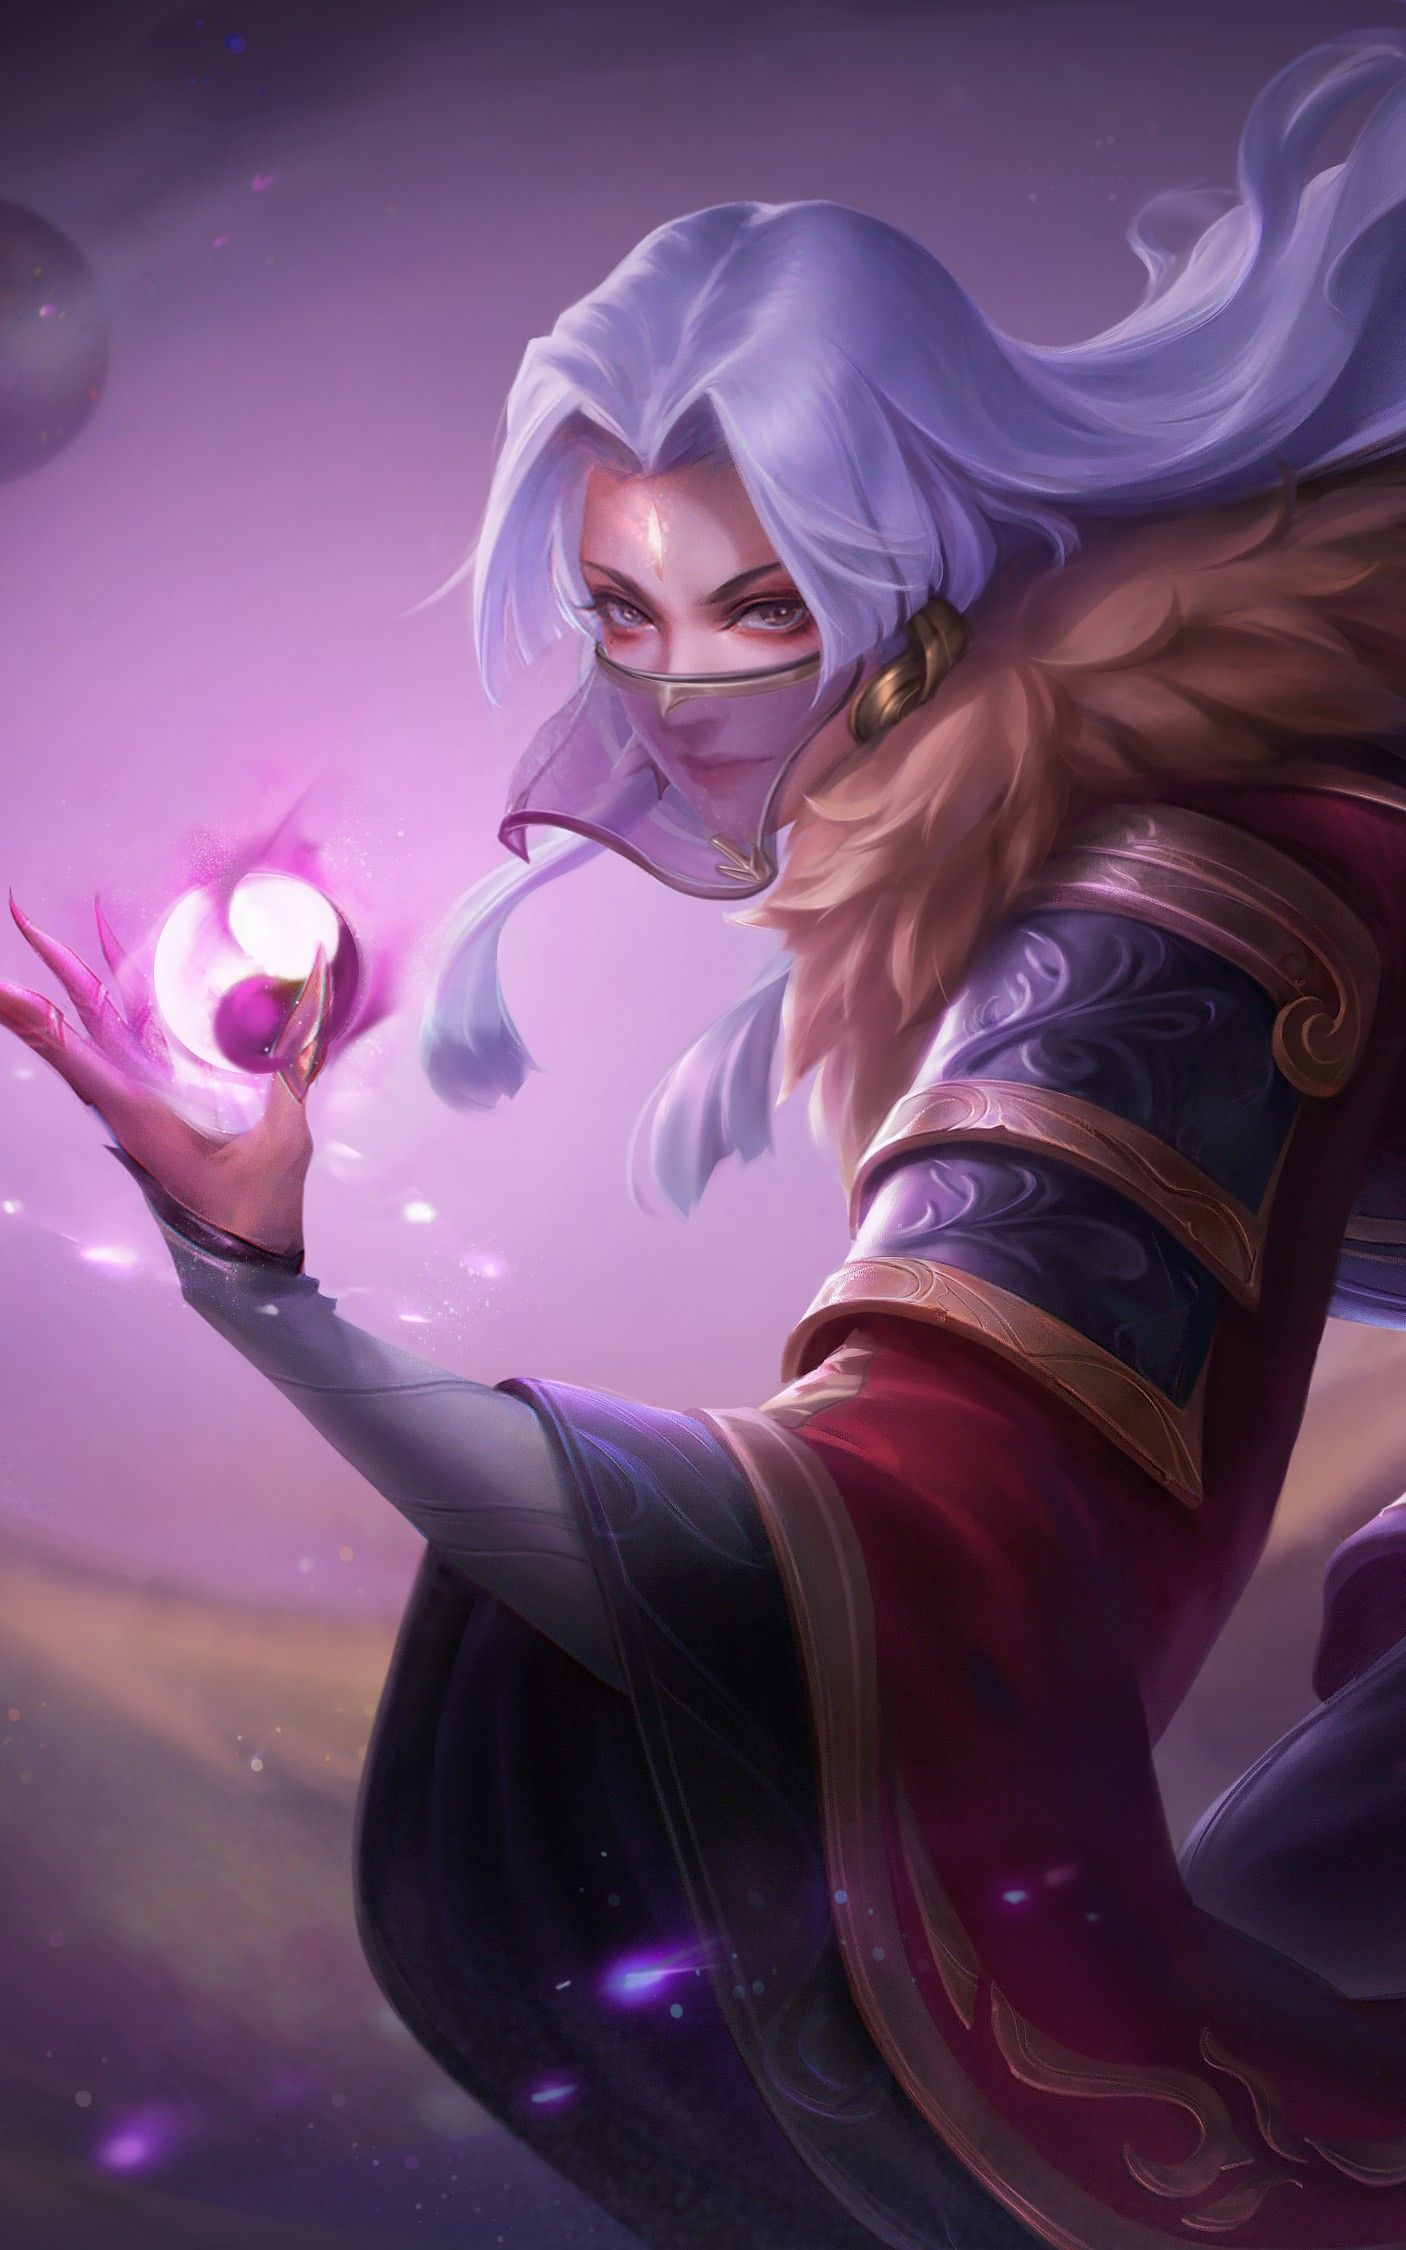 Luo Yi | Mobile legend wallpaper, Mobile legends wallpaper, Mobile legends